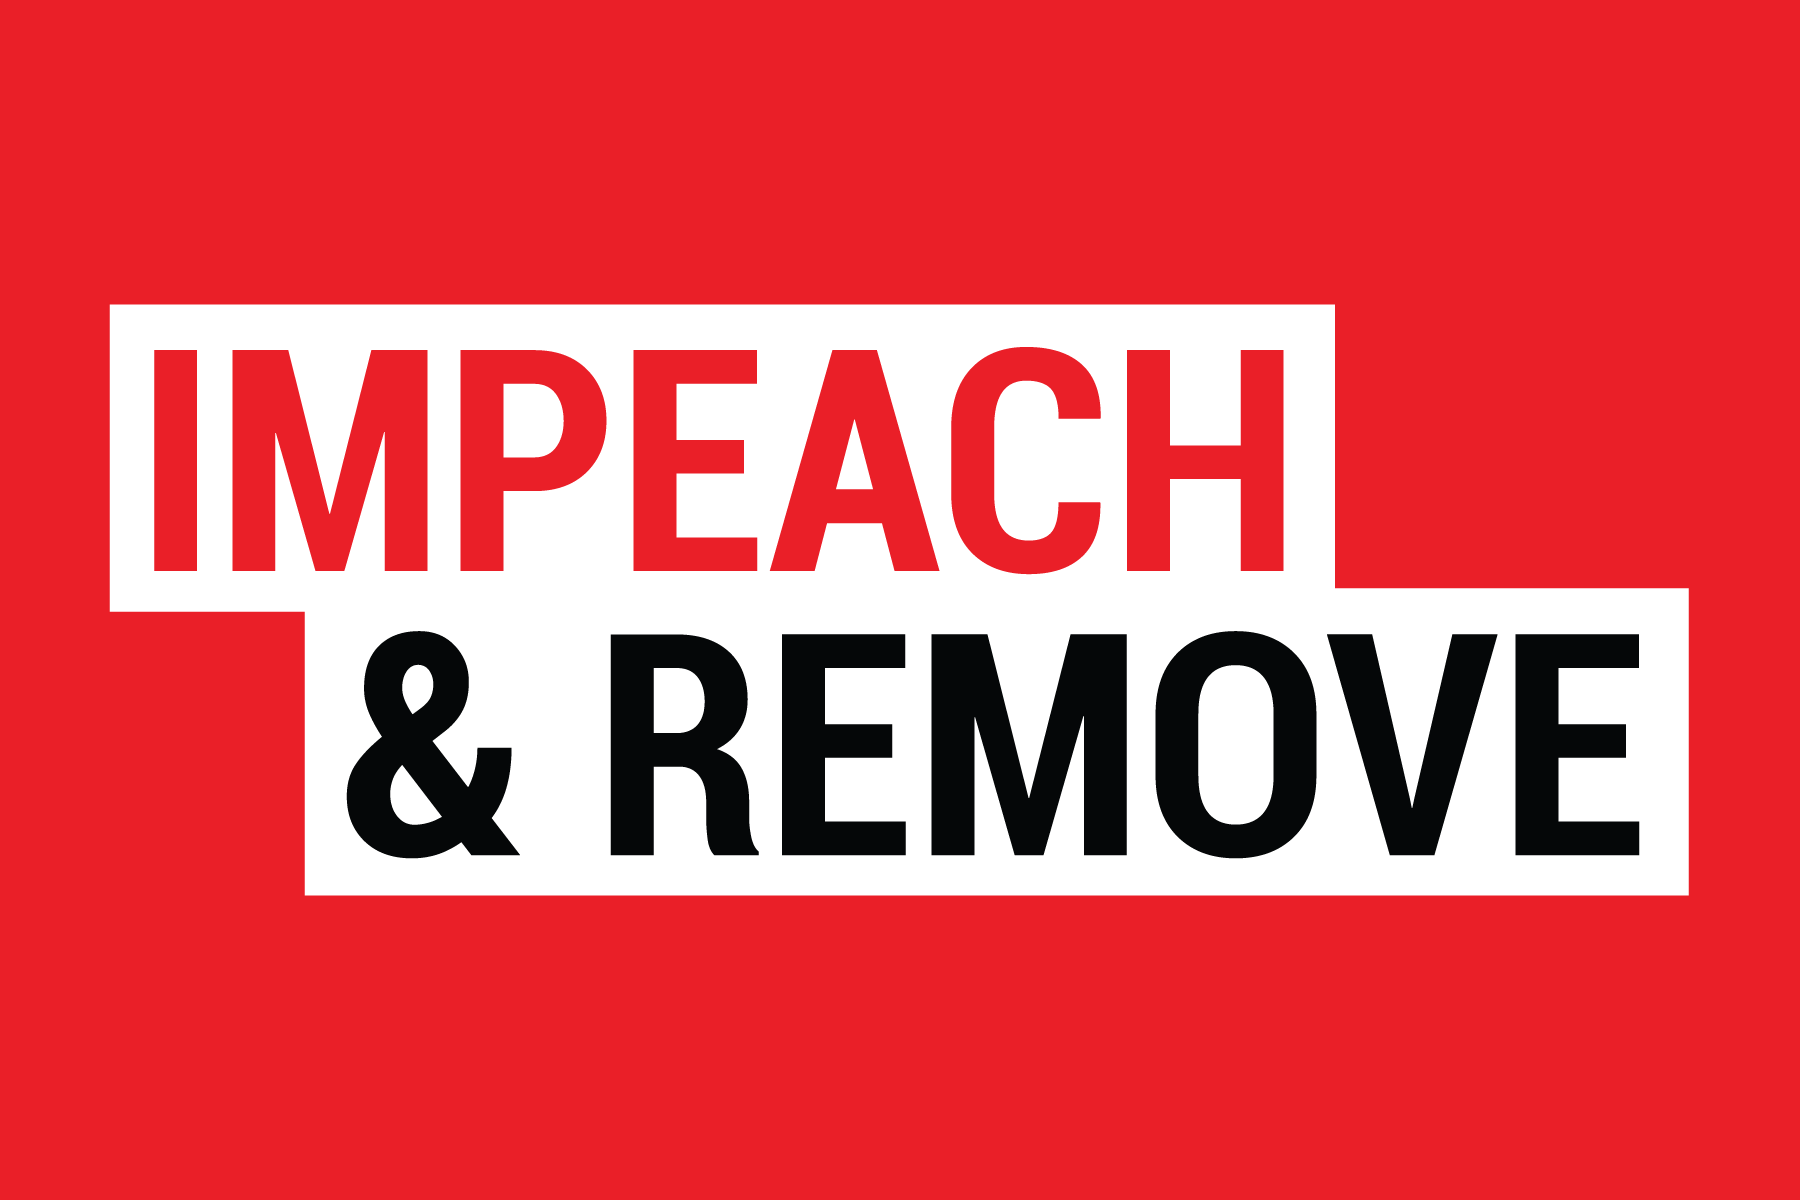 impeach and remove sign